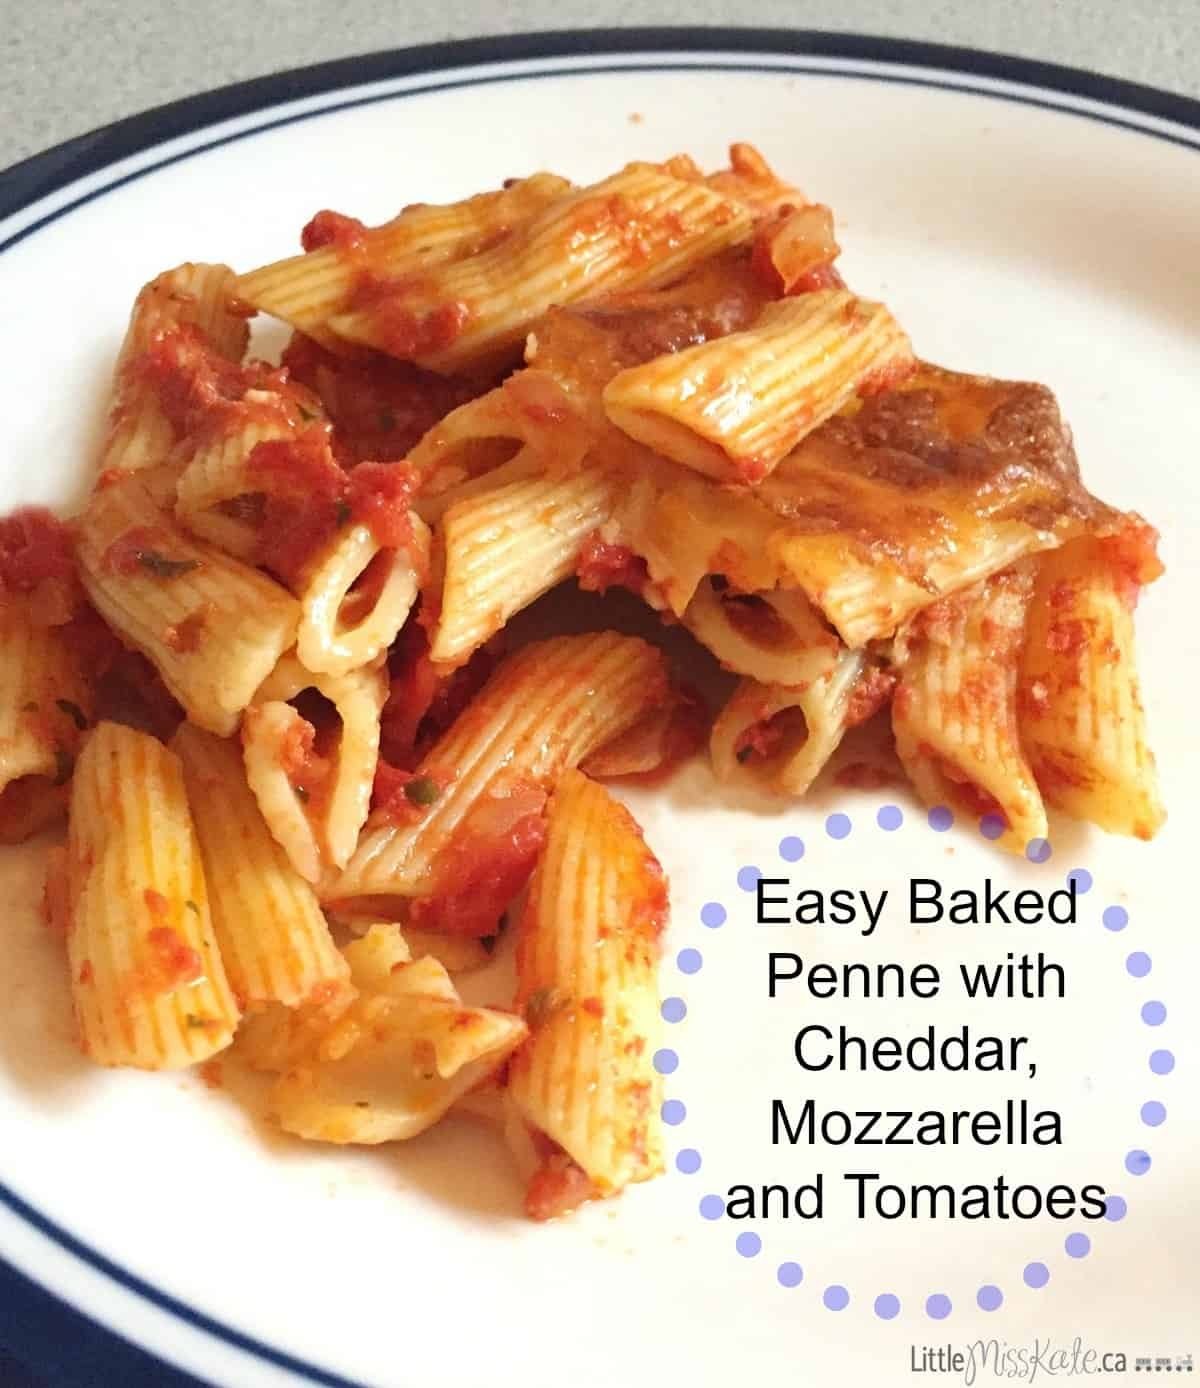 Easy Baked Penne with Cheddar, Mozzarella and Tomatoes Recipe & Award ...